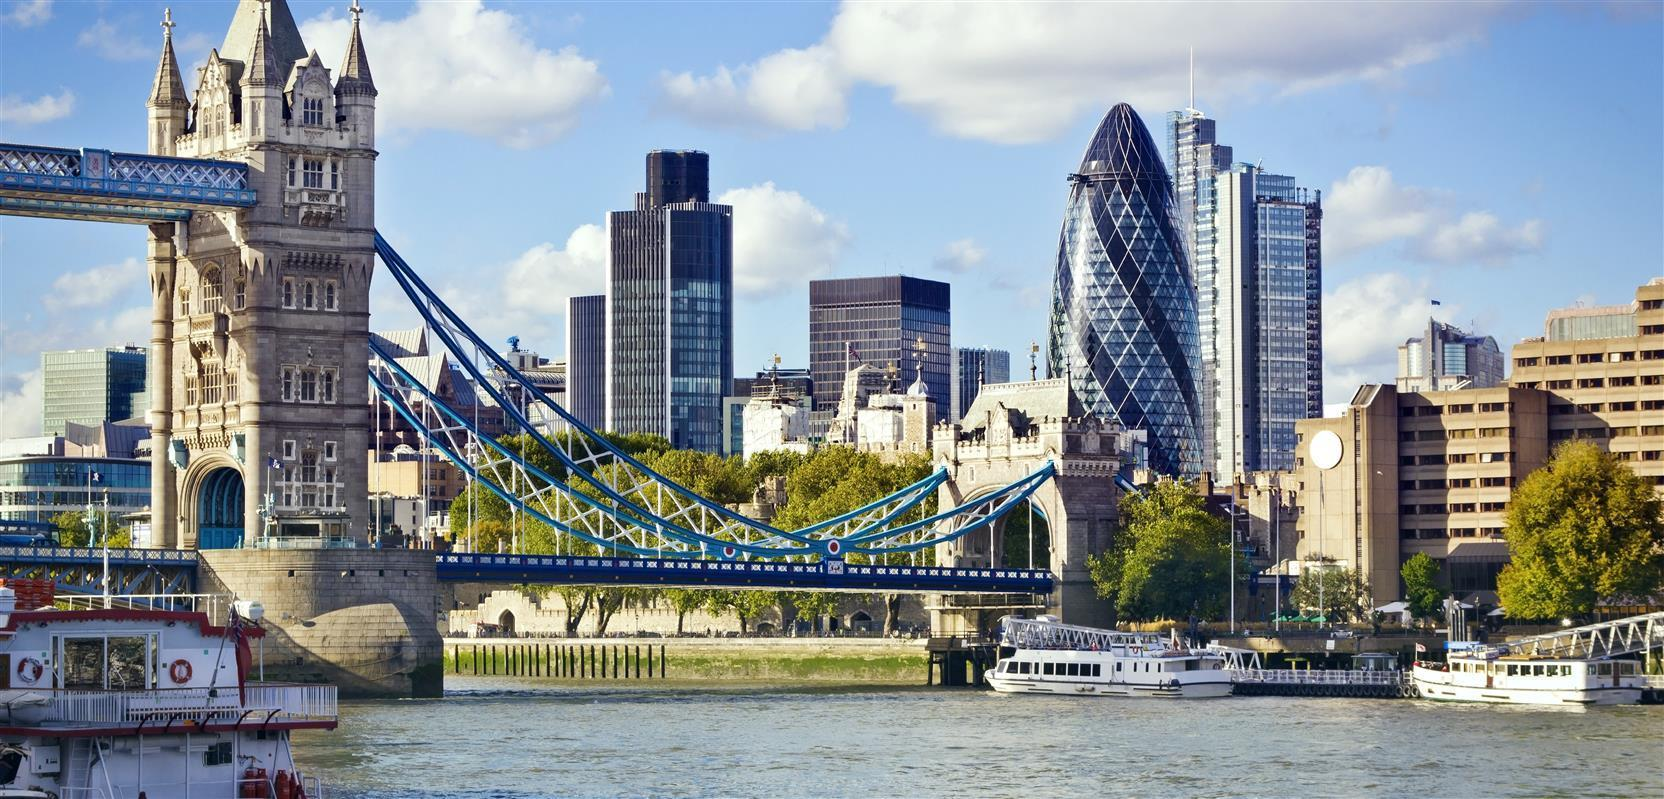 Benefits-of-business-IT-support-for-small-companies-in-london